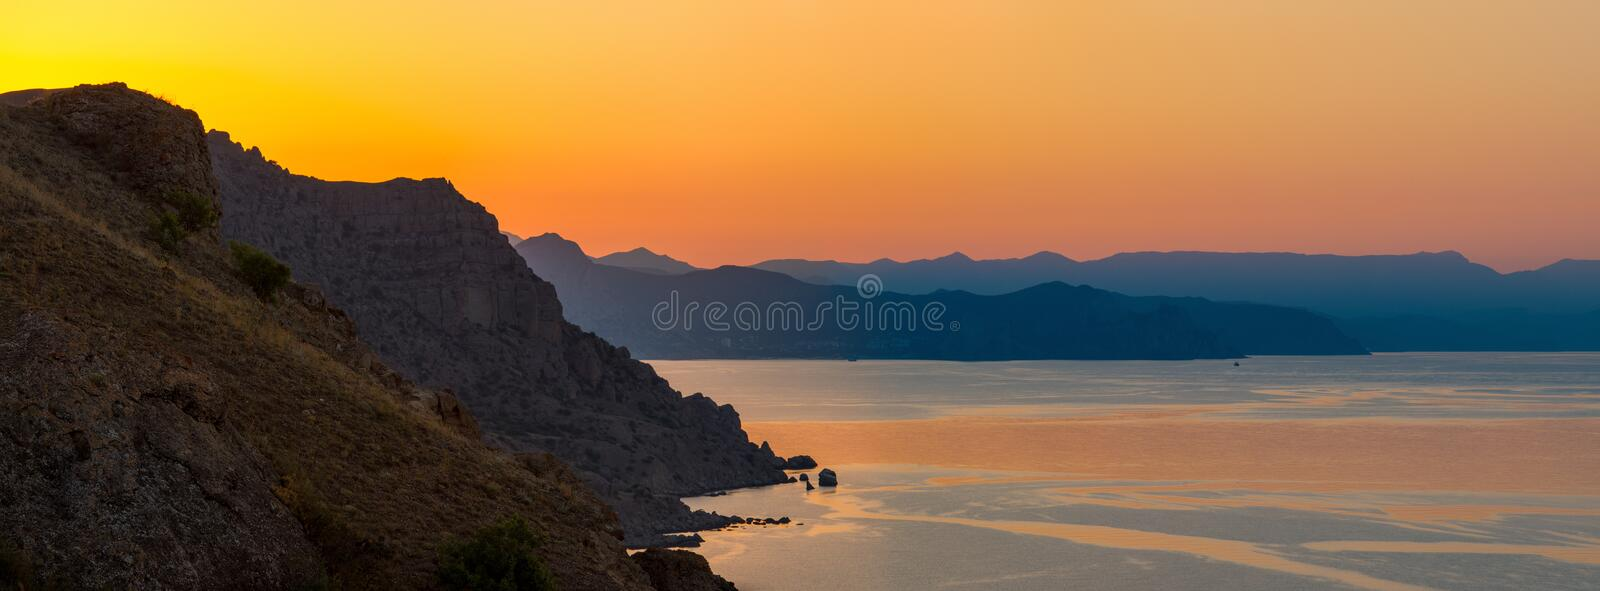 Beauty nature evening or morning sea landscape stock photo